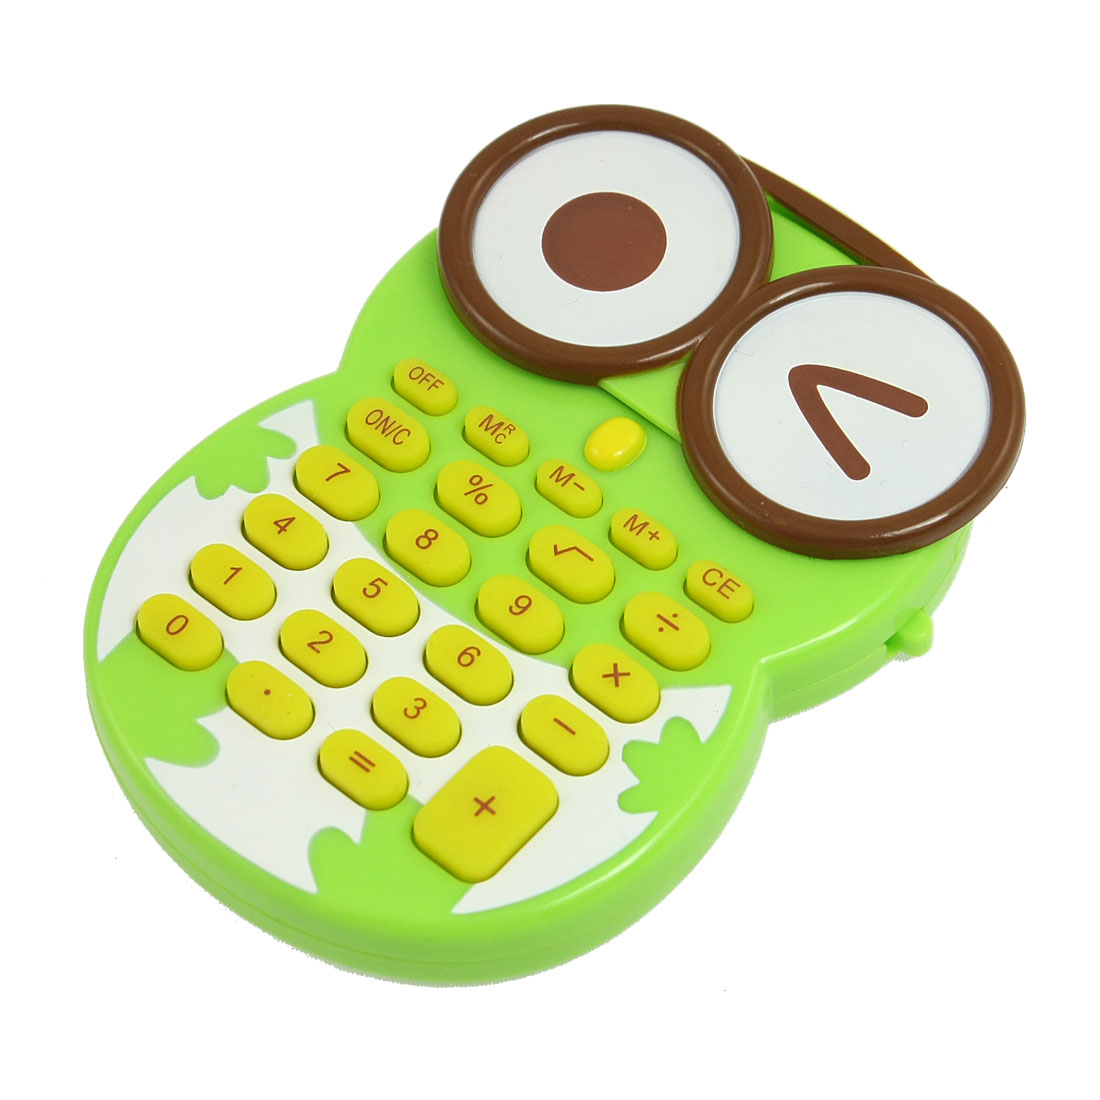 Green Plastic Owl Shaped Case 8 Digits LCD Display Electronic Calculator